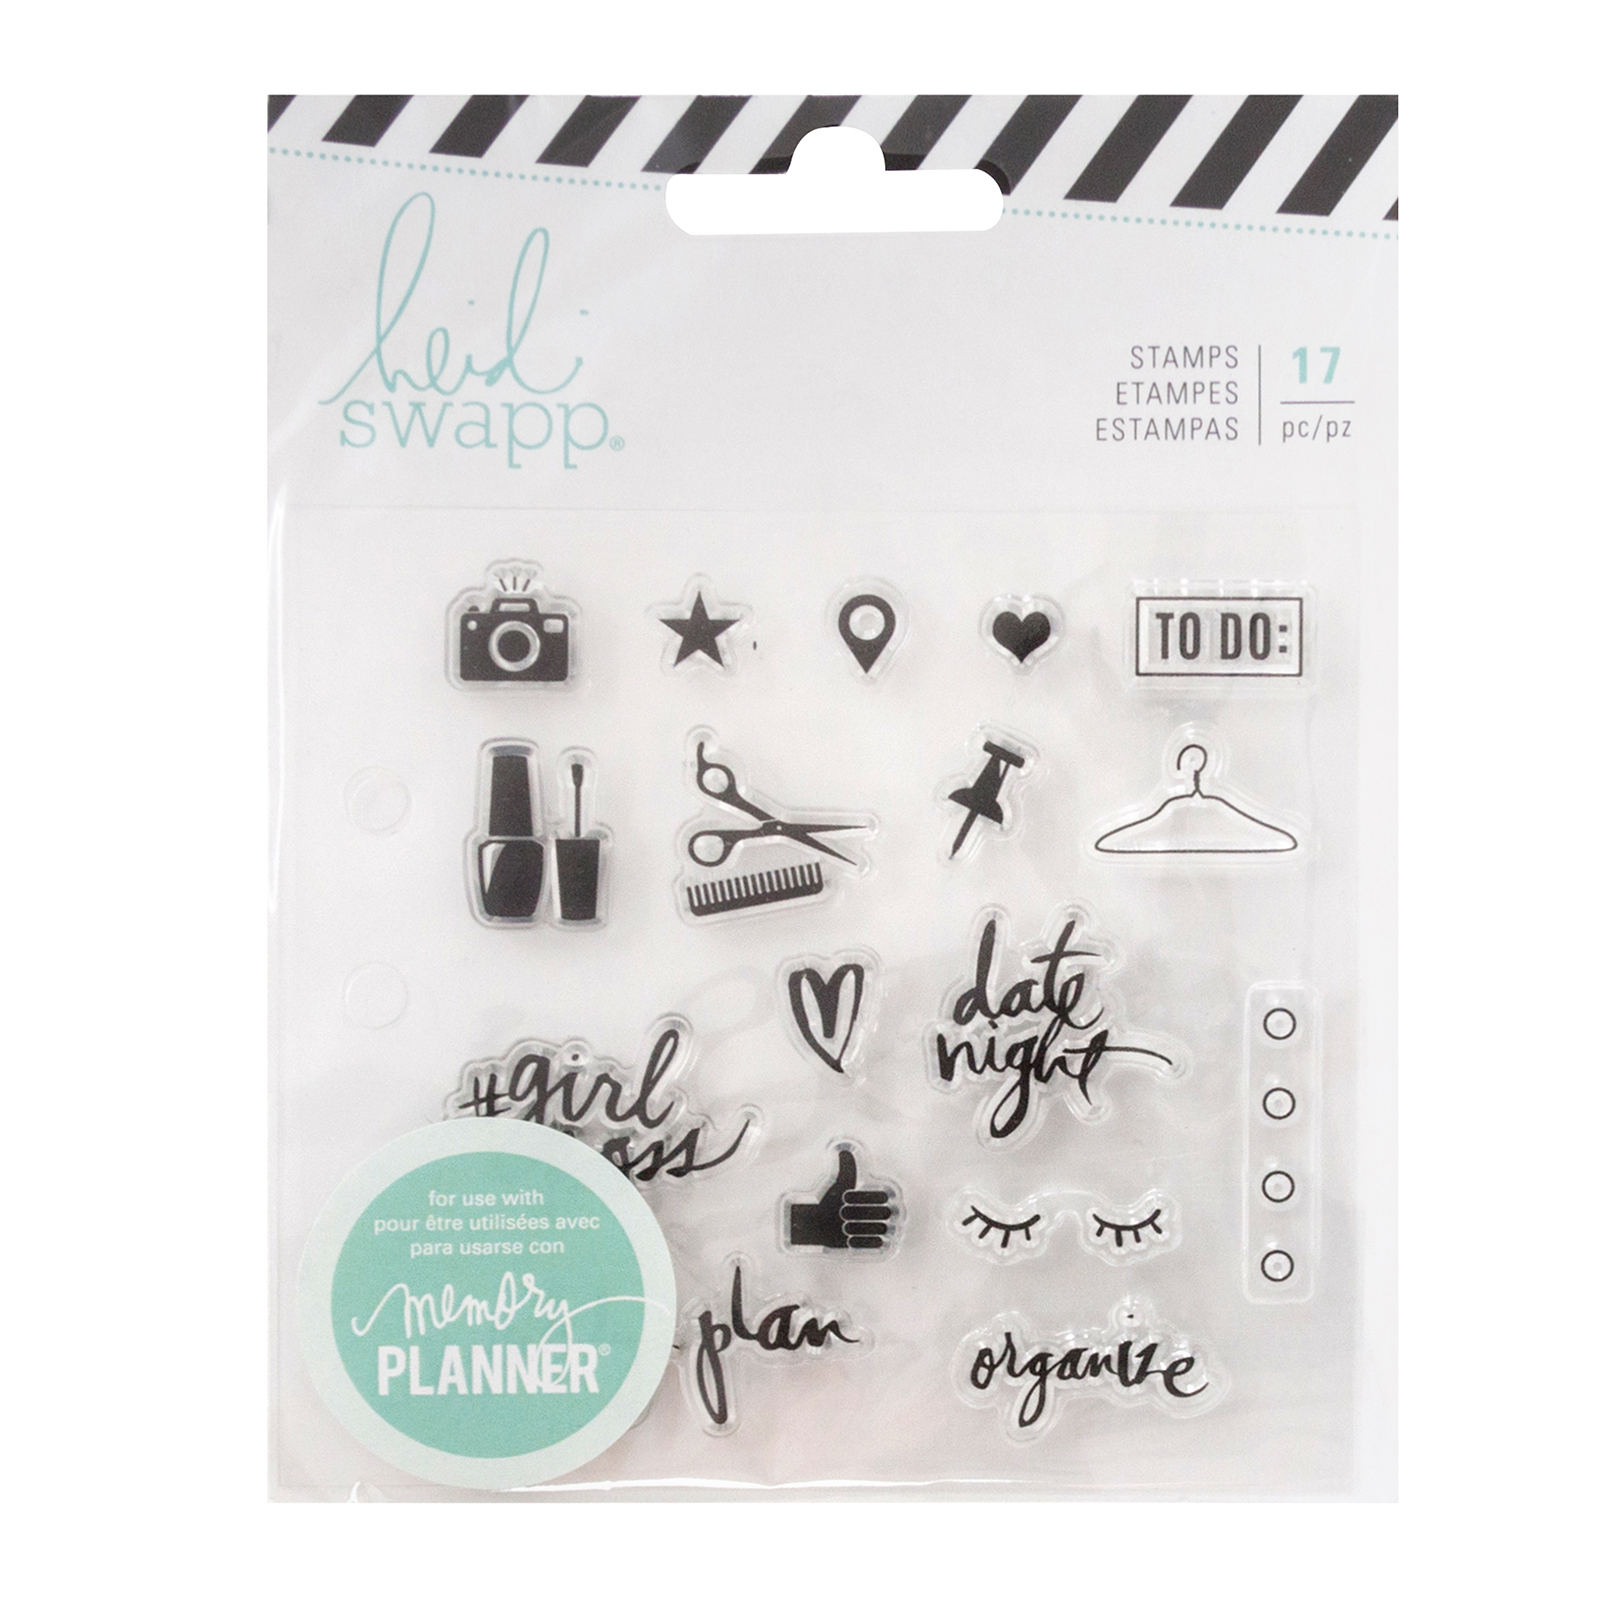 Heidi Swapp Memory Planner Clear Stamps Fresh Start, Everyday에 대한 이미지 검색결과